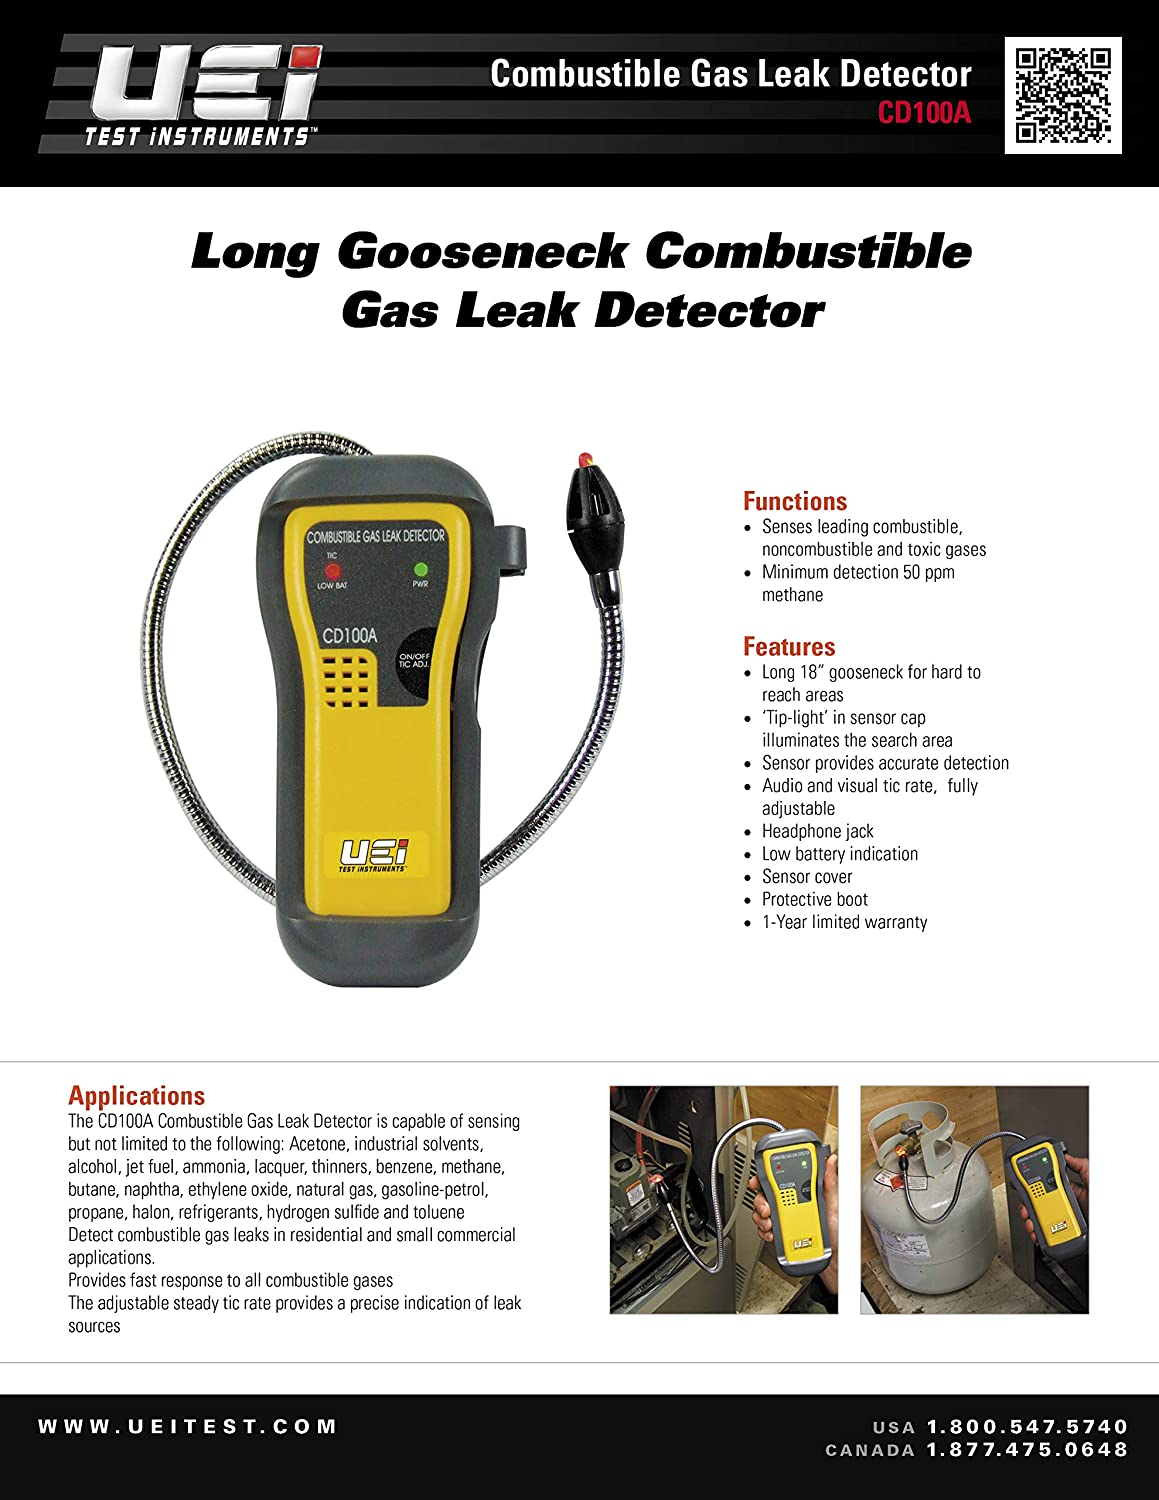 Amazon com: UEi Test Instruments CD100A Combustible Gas Leak